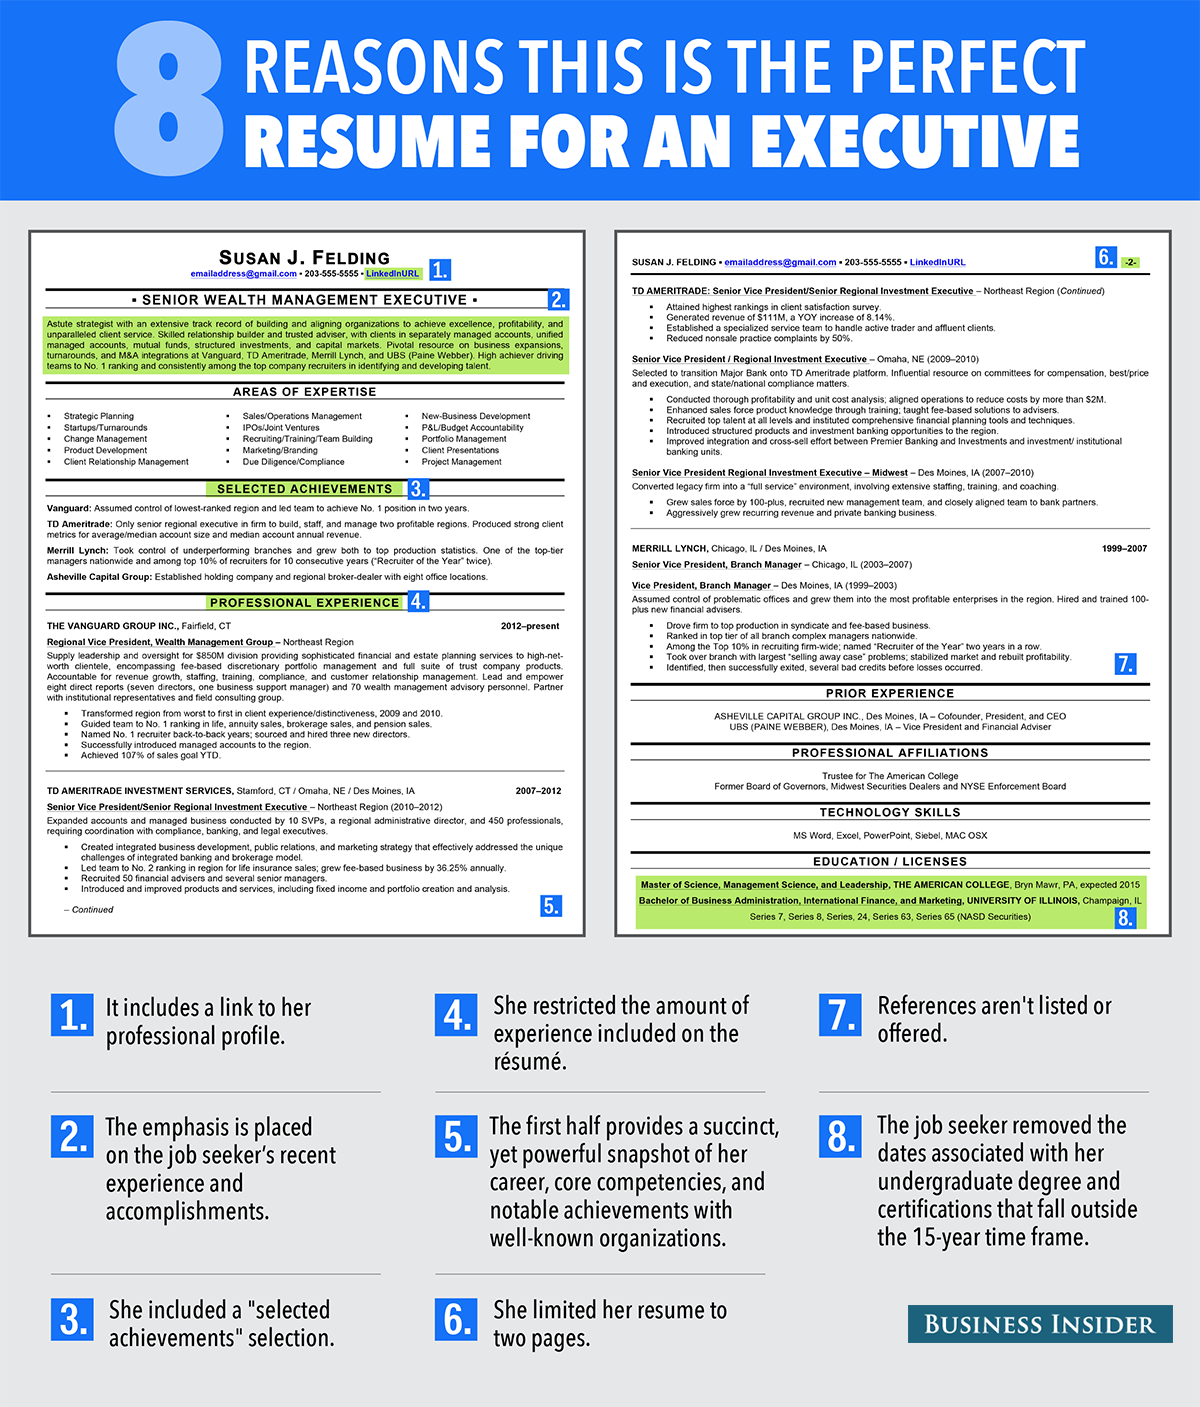 25 best ideas about executive resume on pinterest - Executive Resume Writing Services